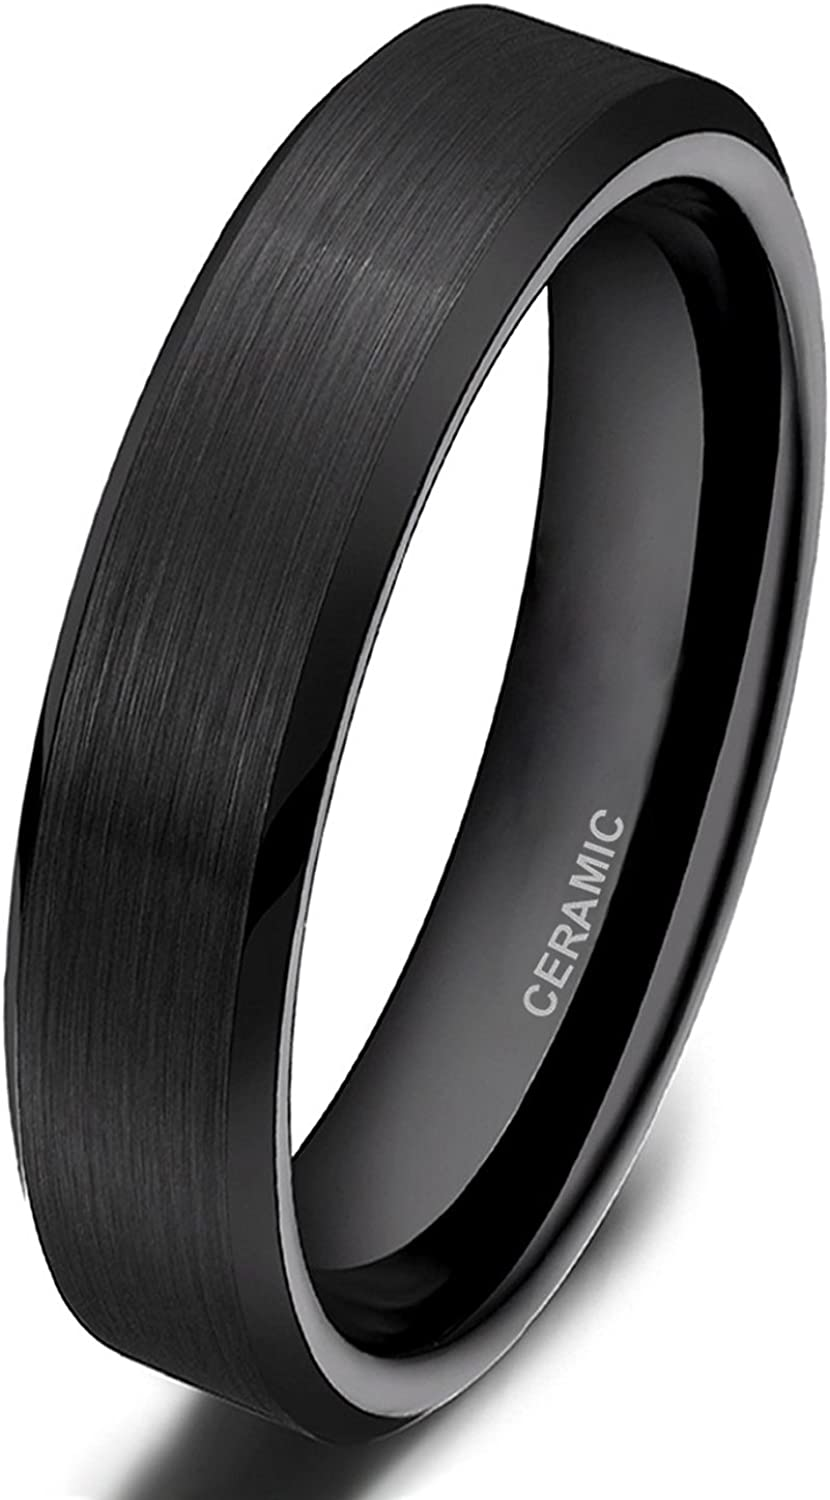 Ceramic Black 8mm Brushed and Polished Band Ring 6 to 13 Size